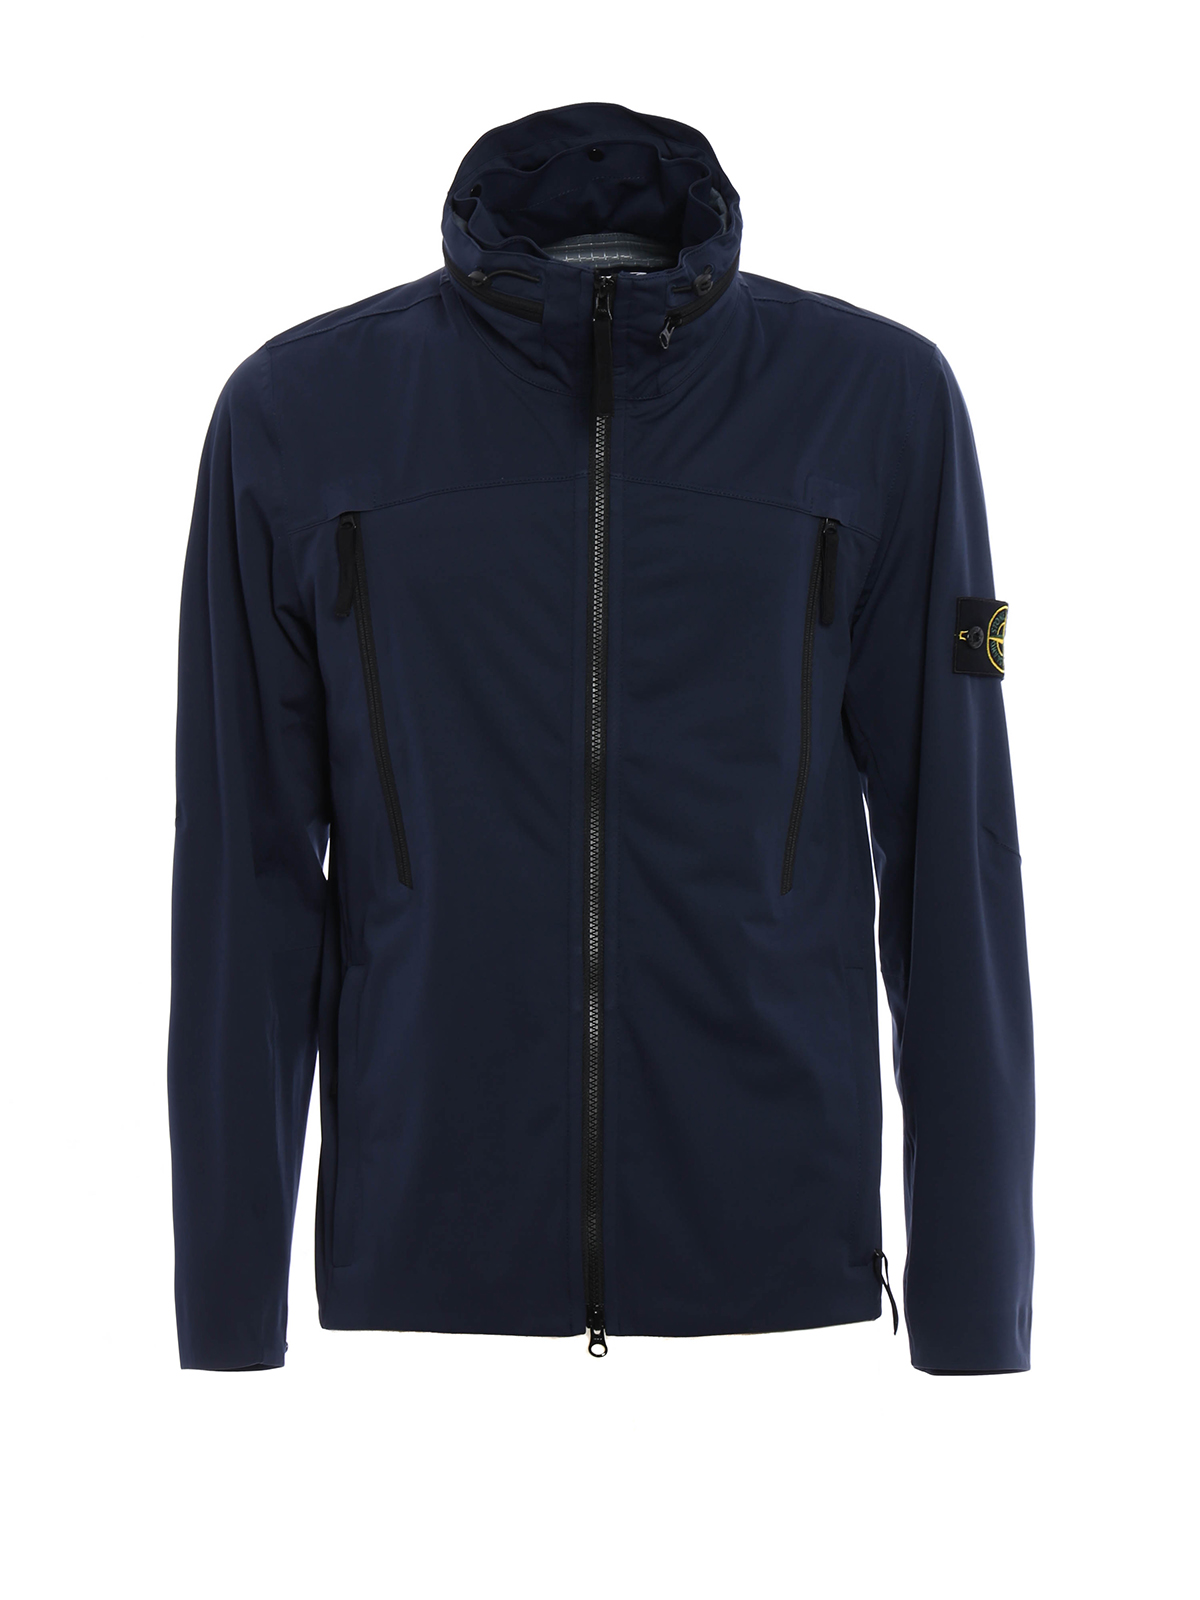 Water and wind resistant jacket by stone island casual for Wind resistant material